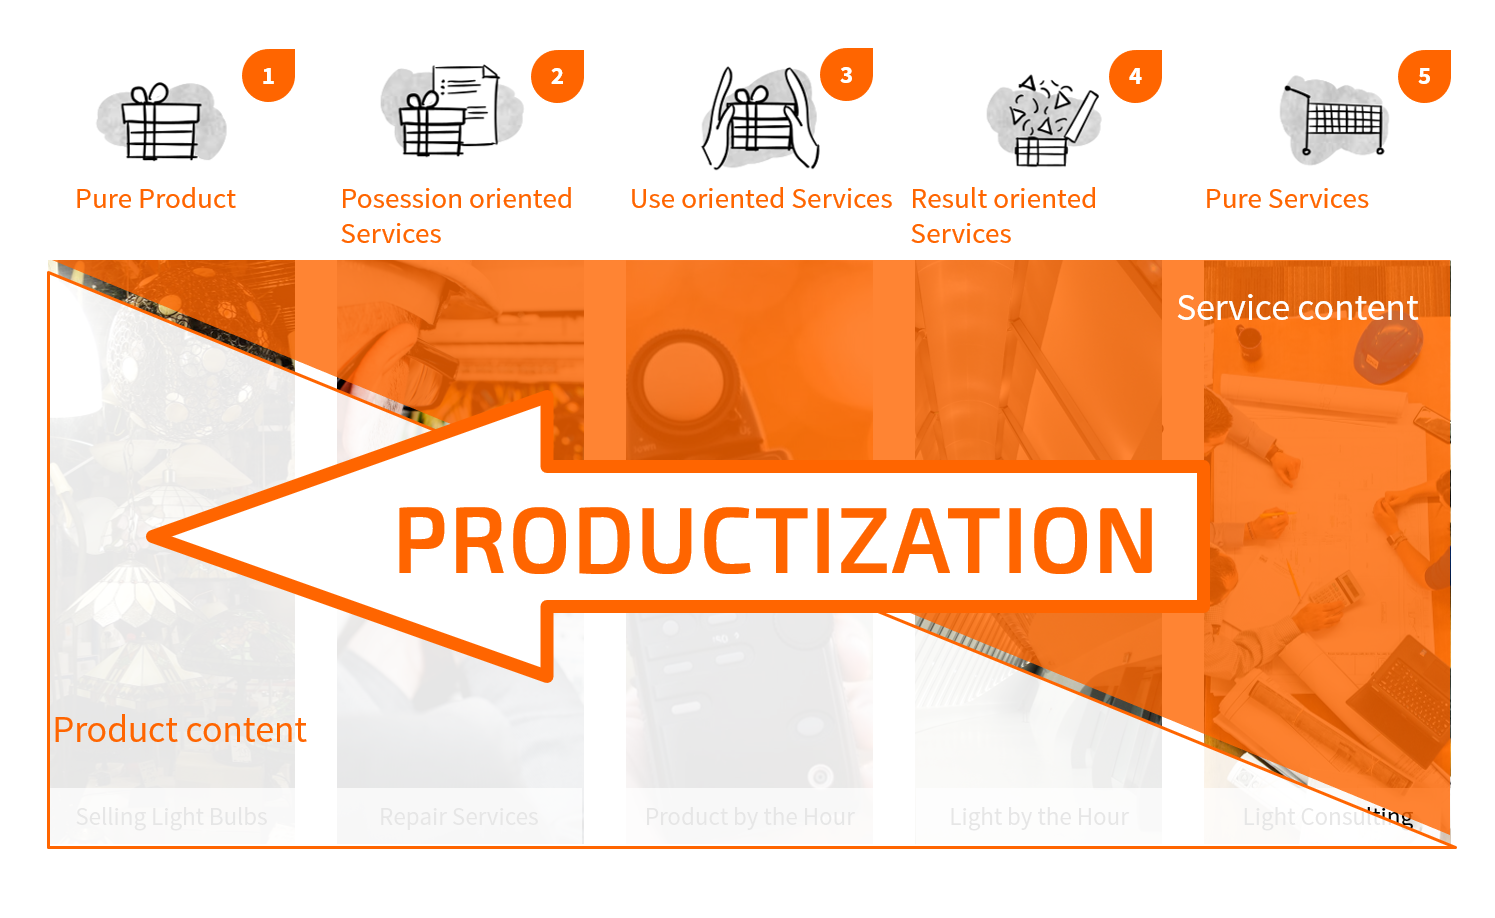 Productization as a Business Model Innovation on 5 different levels - TOM SPIKE